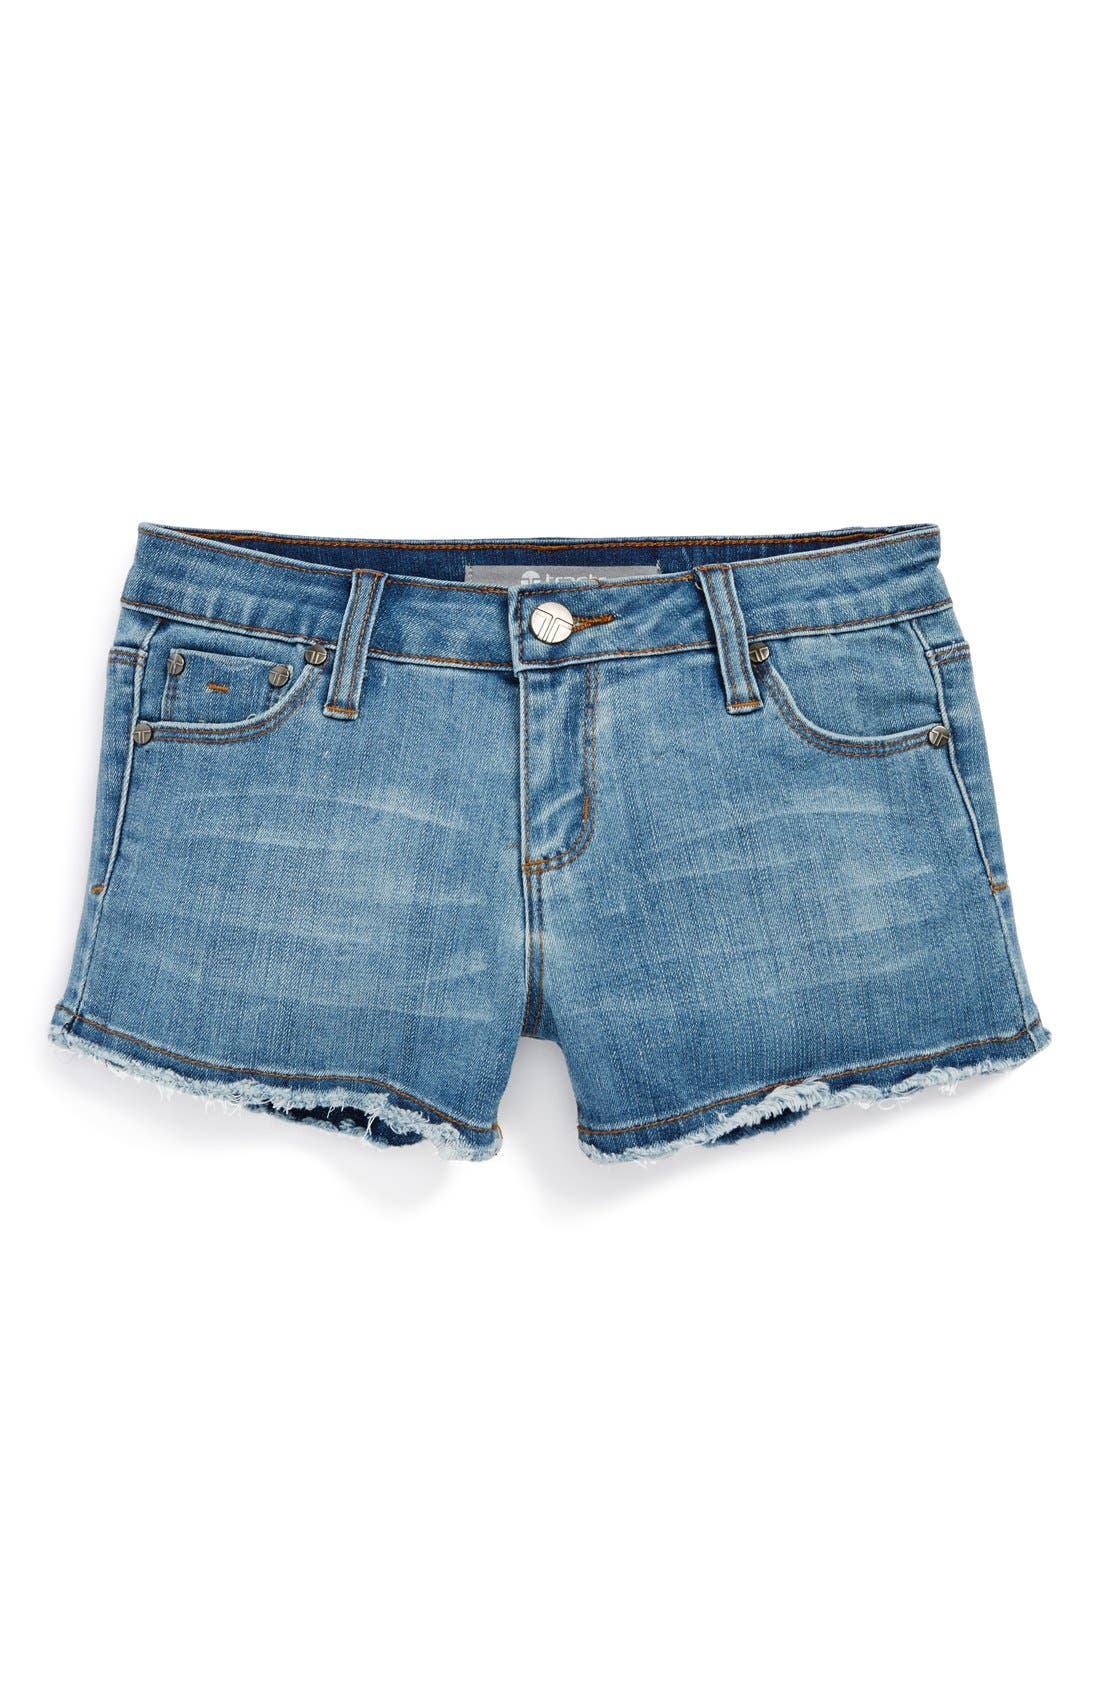 Alternate Image 2  - Tractr Frayed Shorts (Big Girls)